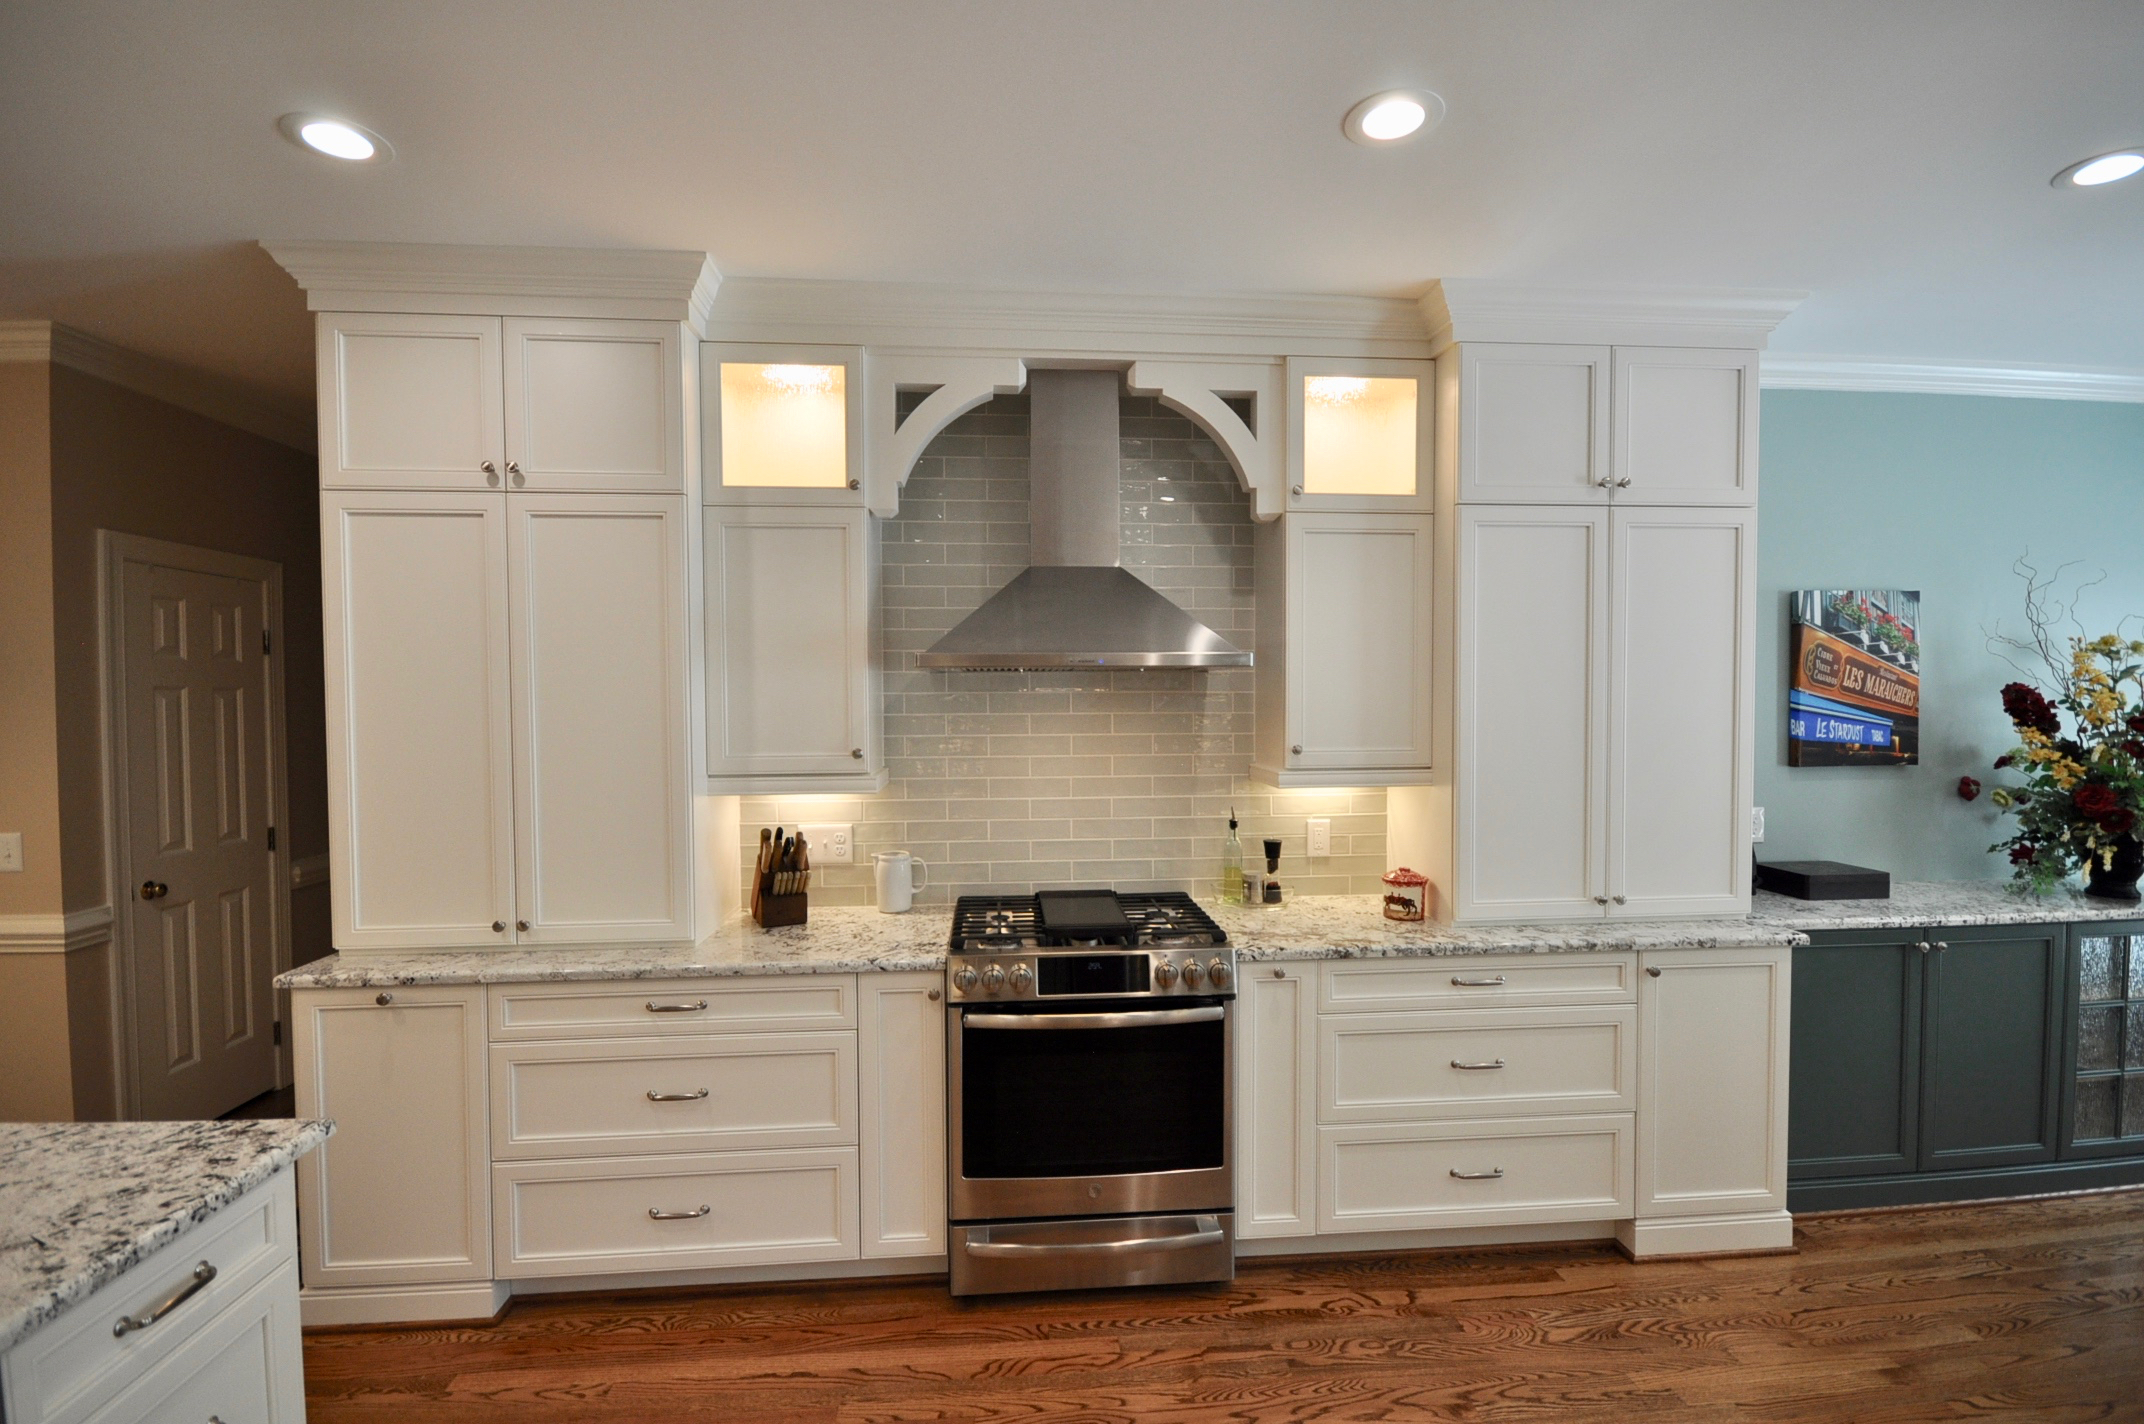 Kitchen Remodel by Riverbirch Remodeling